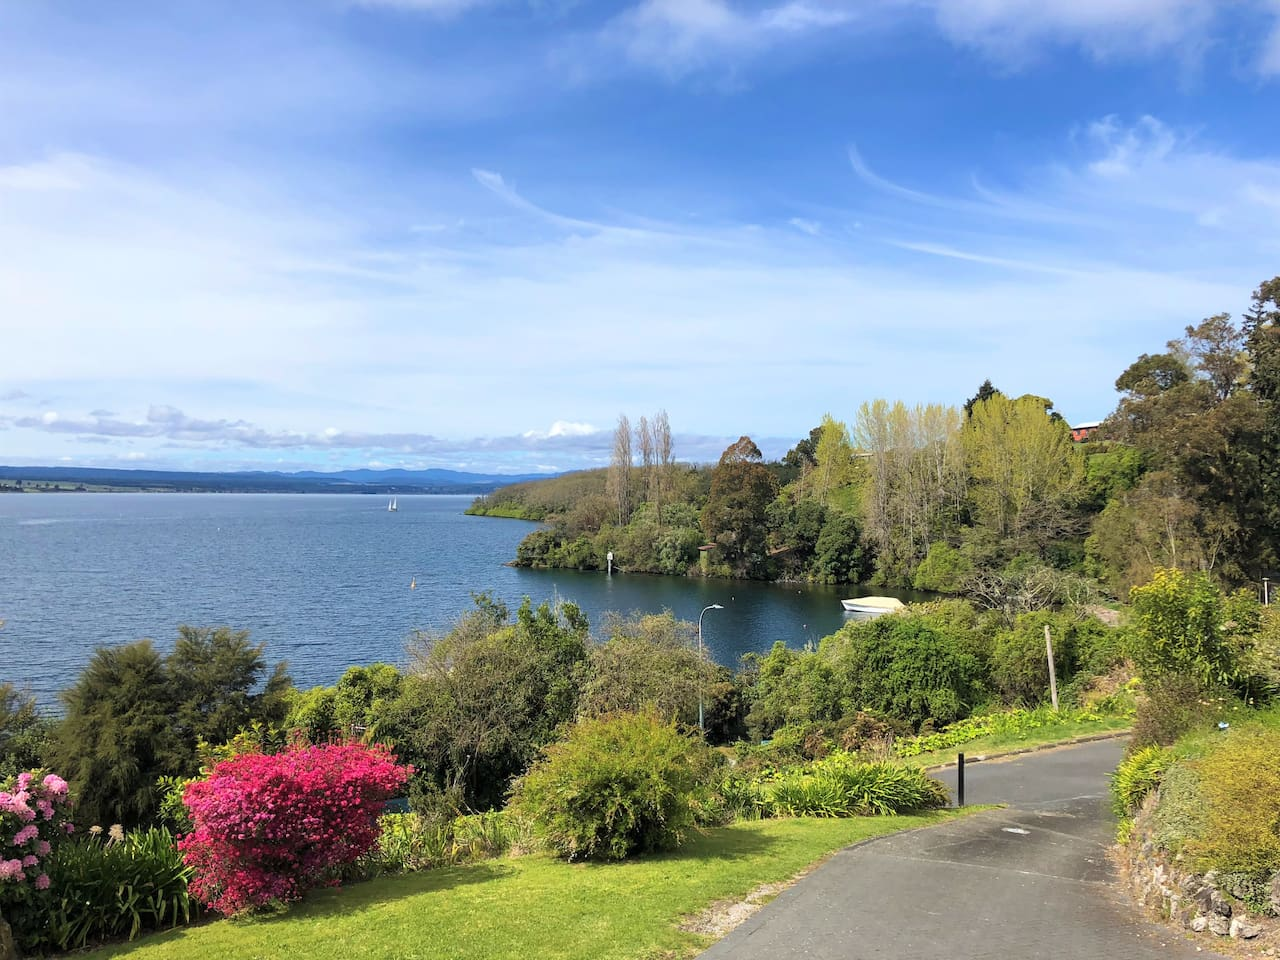 Walk down the driveway and cross the street to dip your toes in the lake! Acacia Bay is a lovely spot to swim